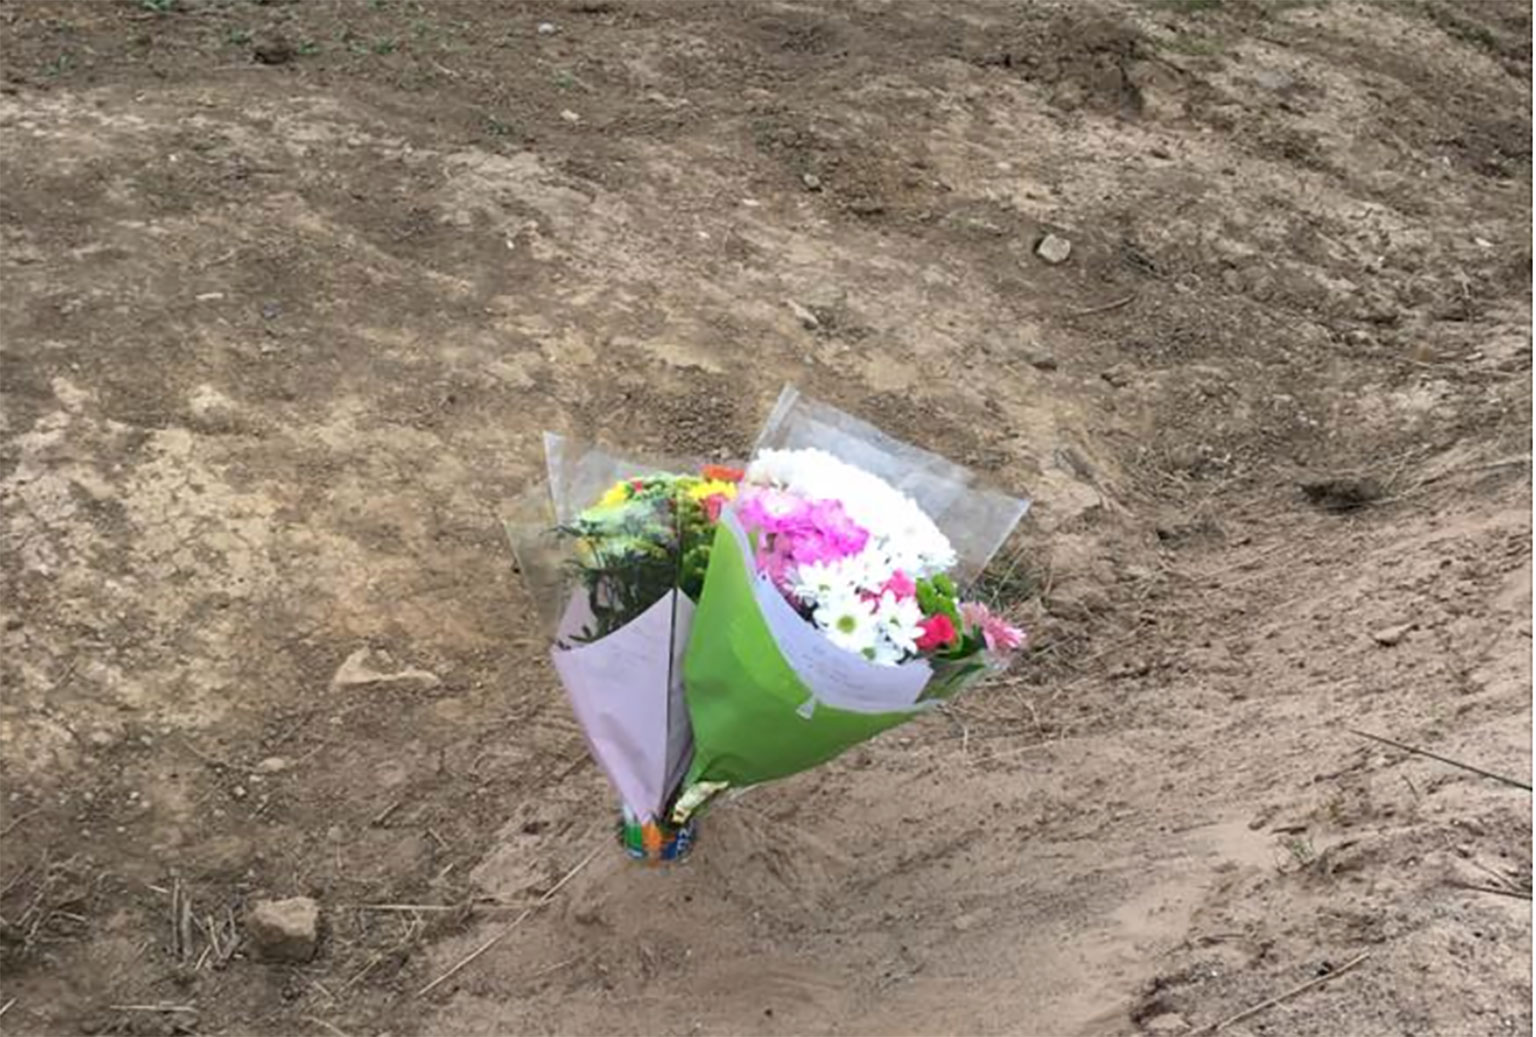 Flowers at the track where he crashed